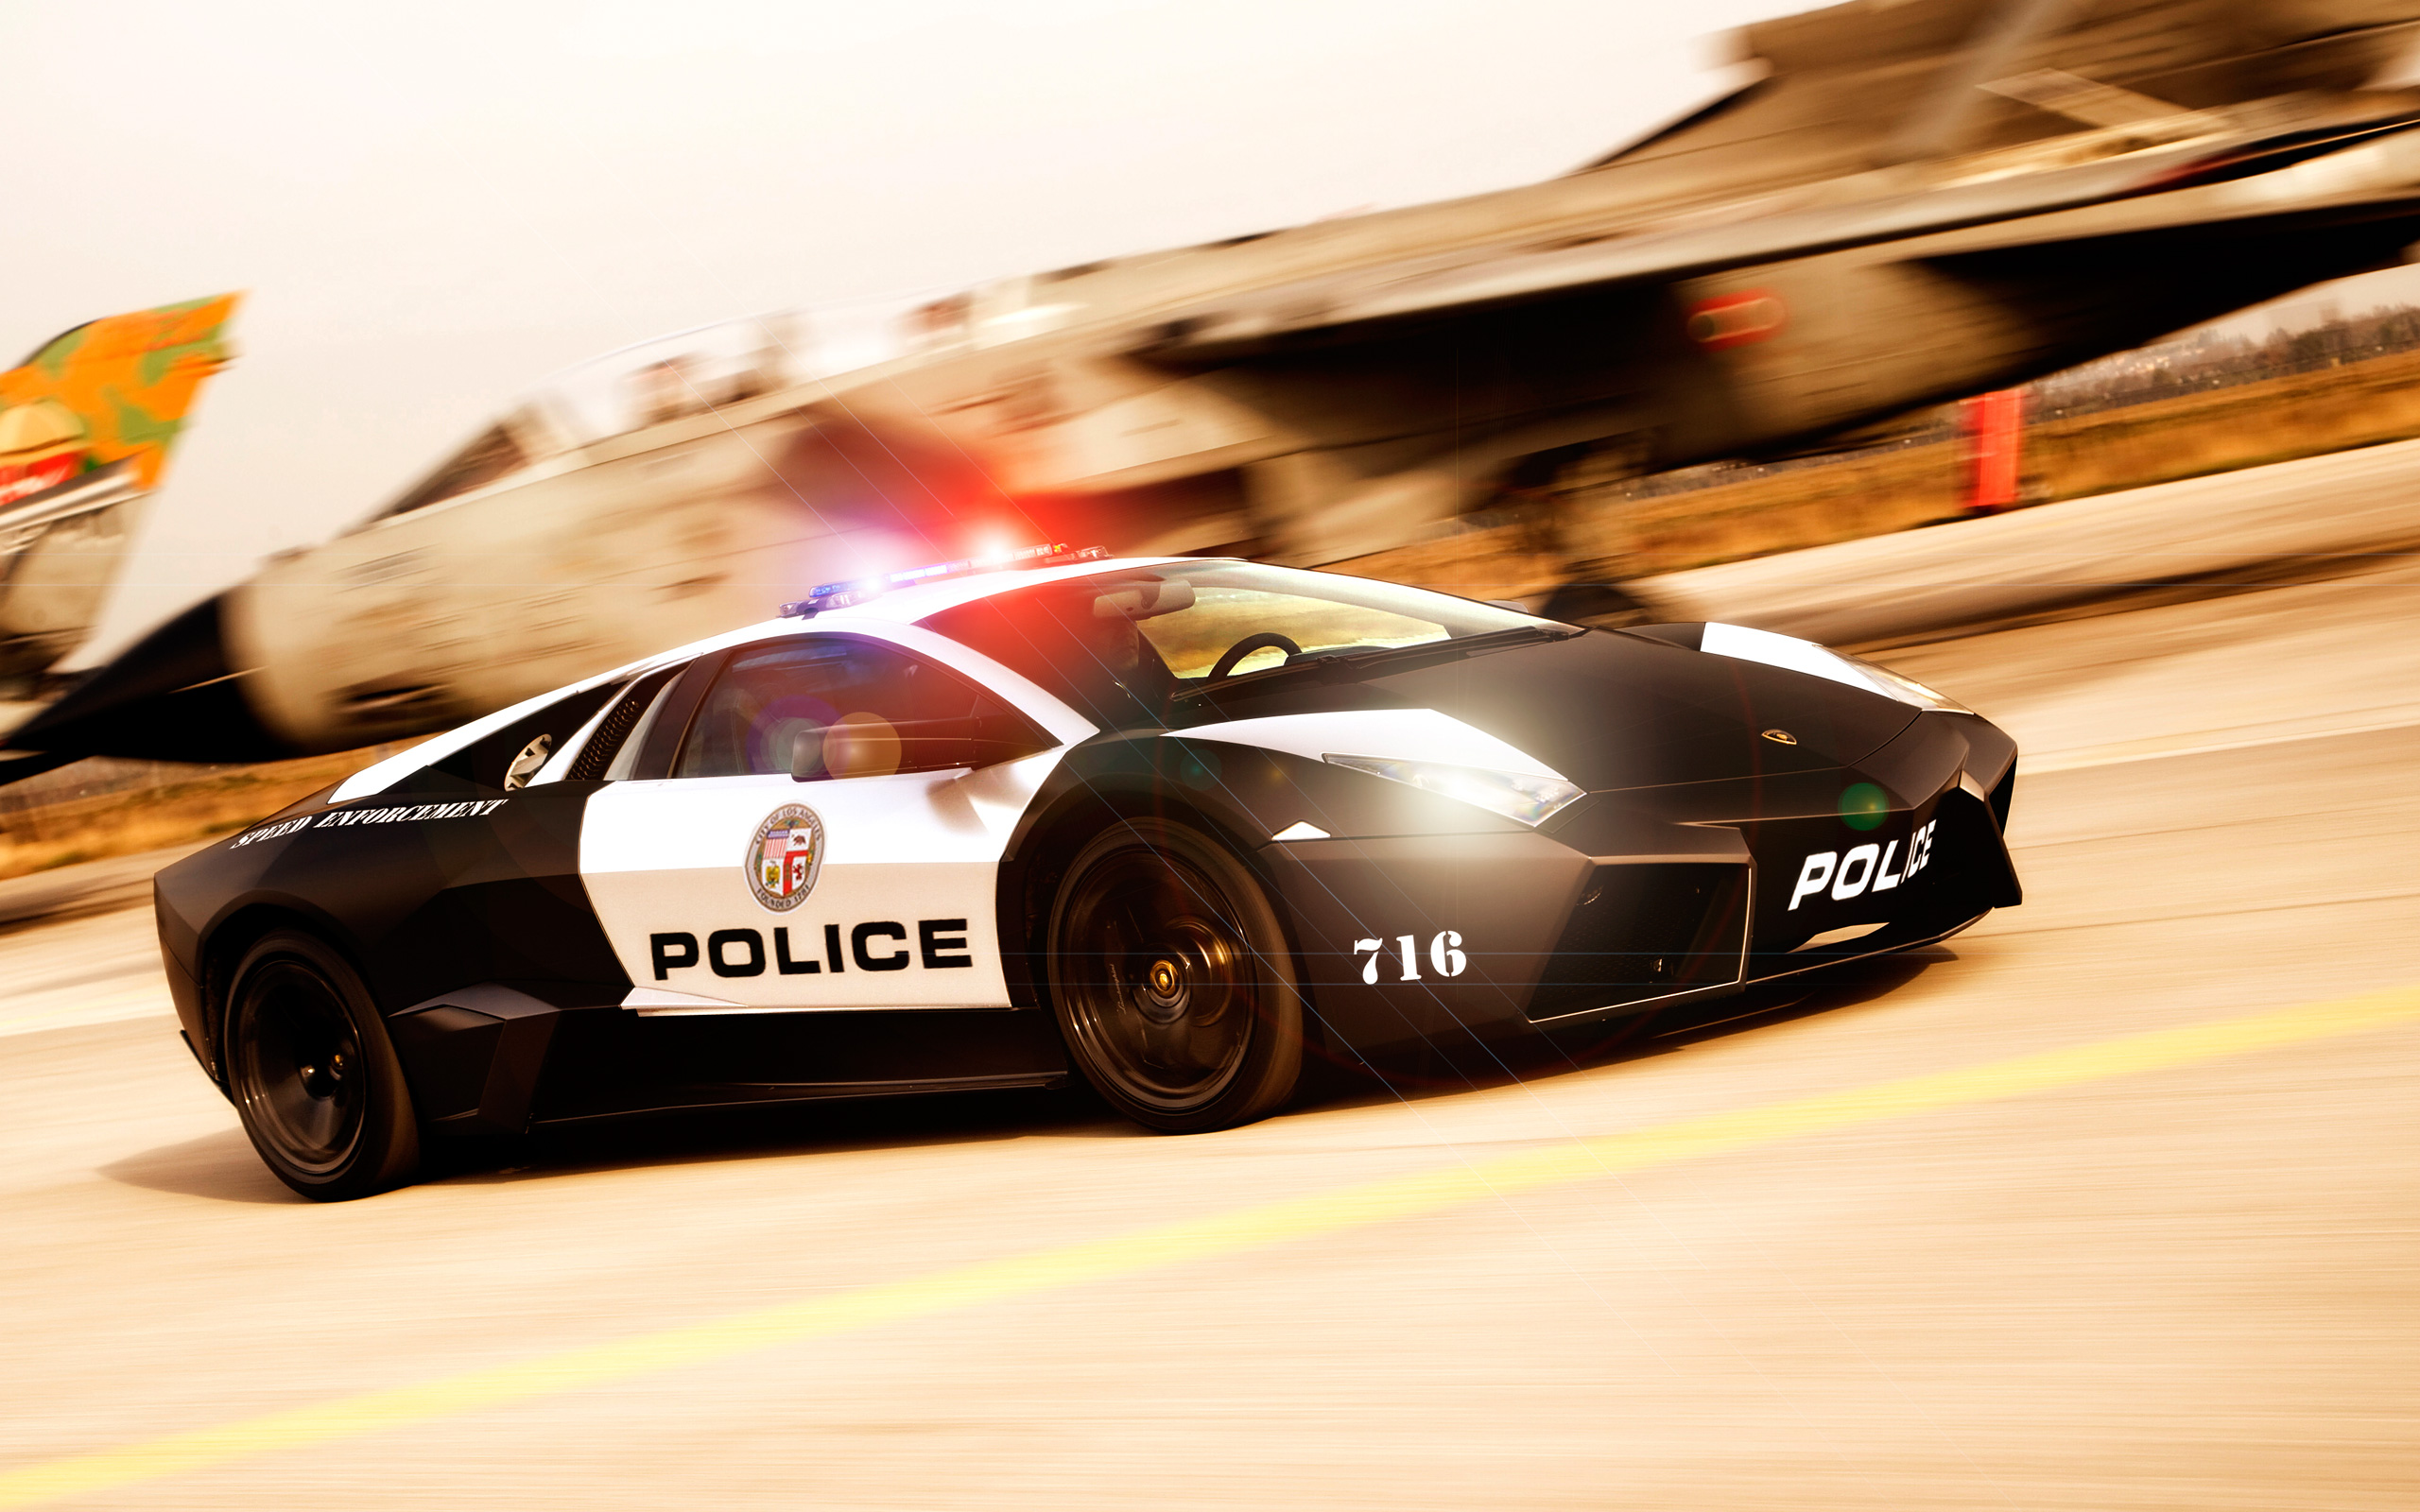 Lamborghini NFS Hot Pursuit 643.41 Kb